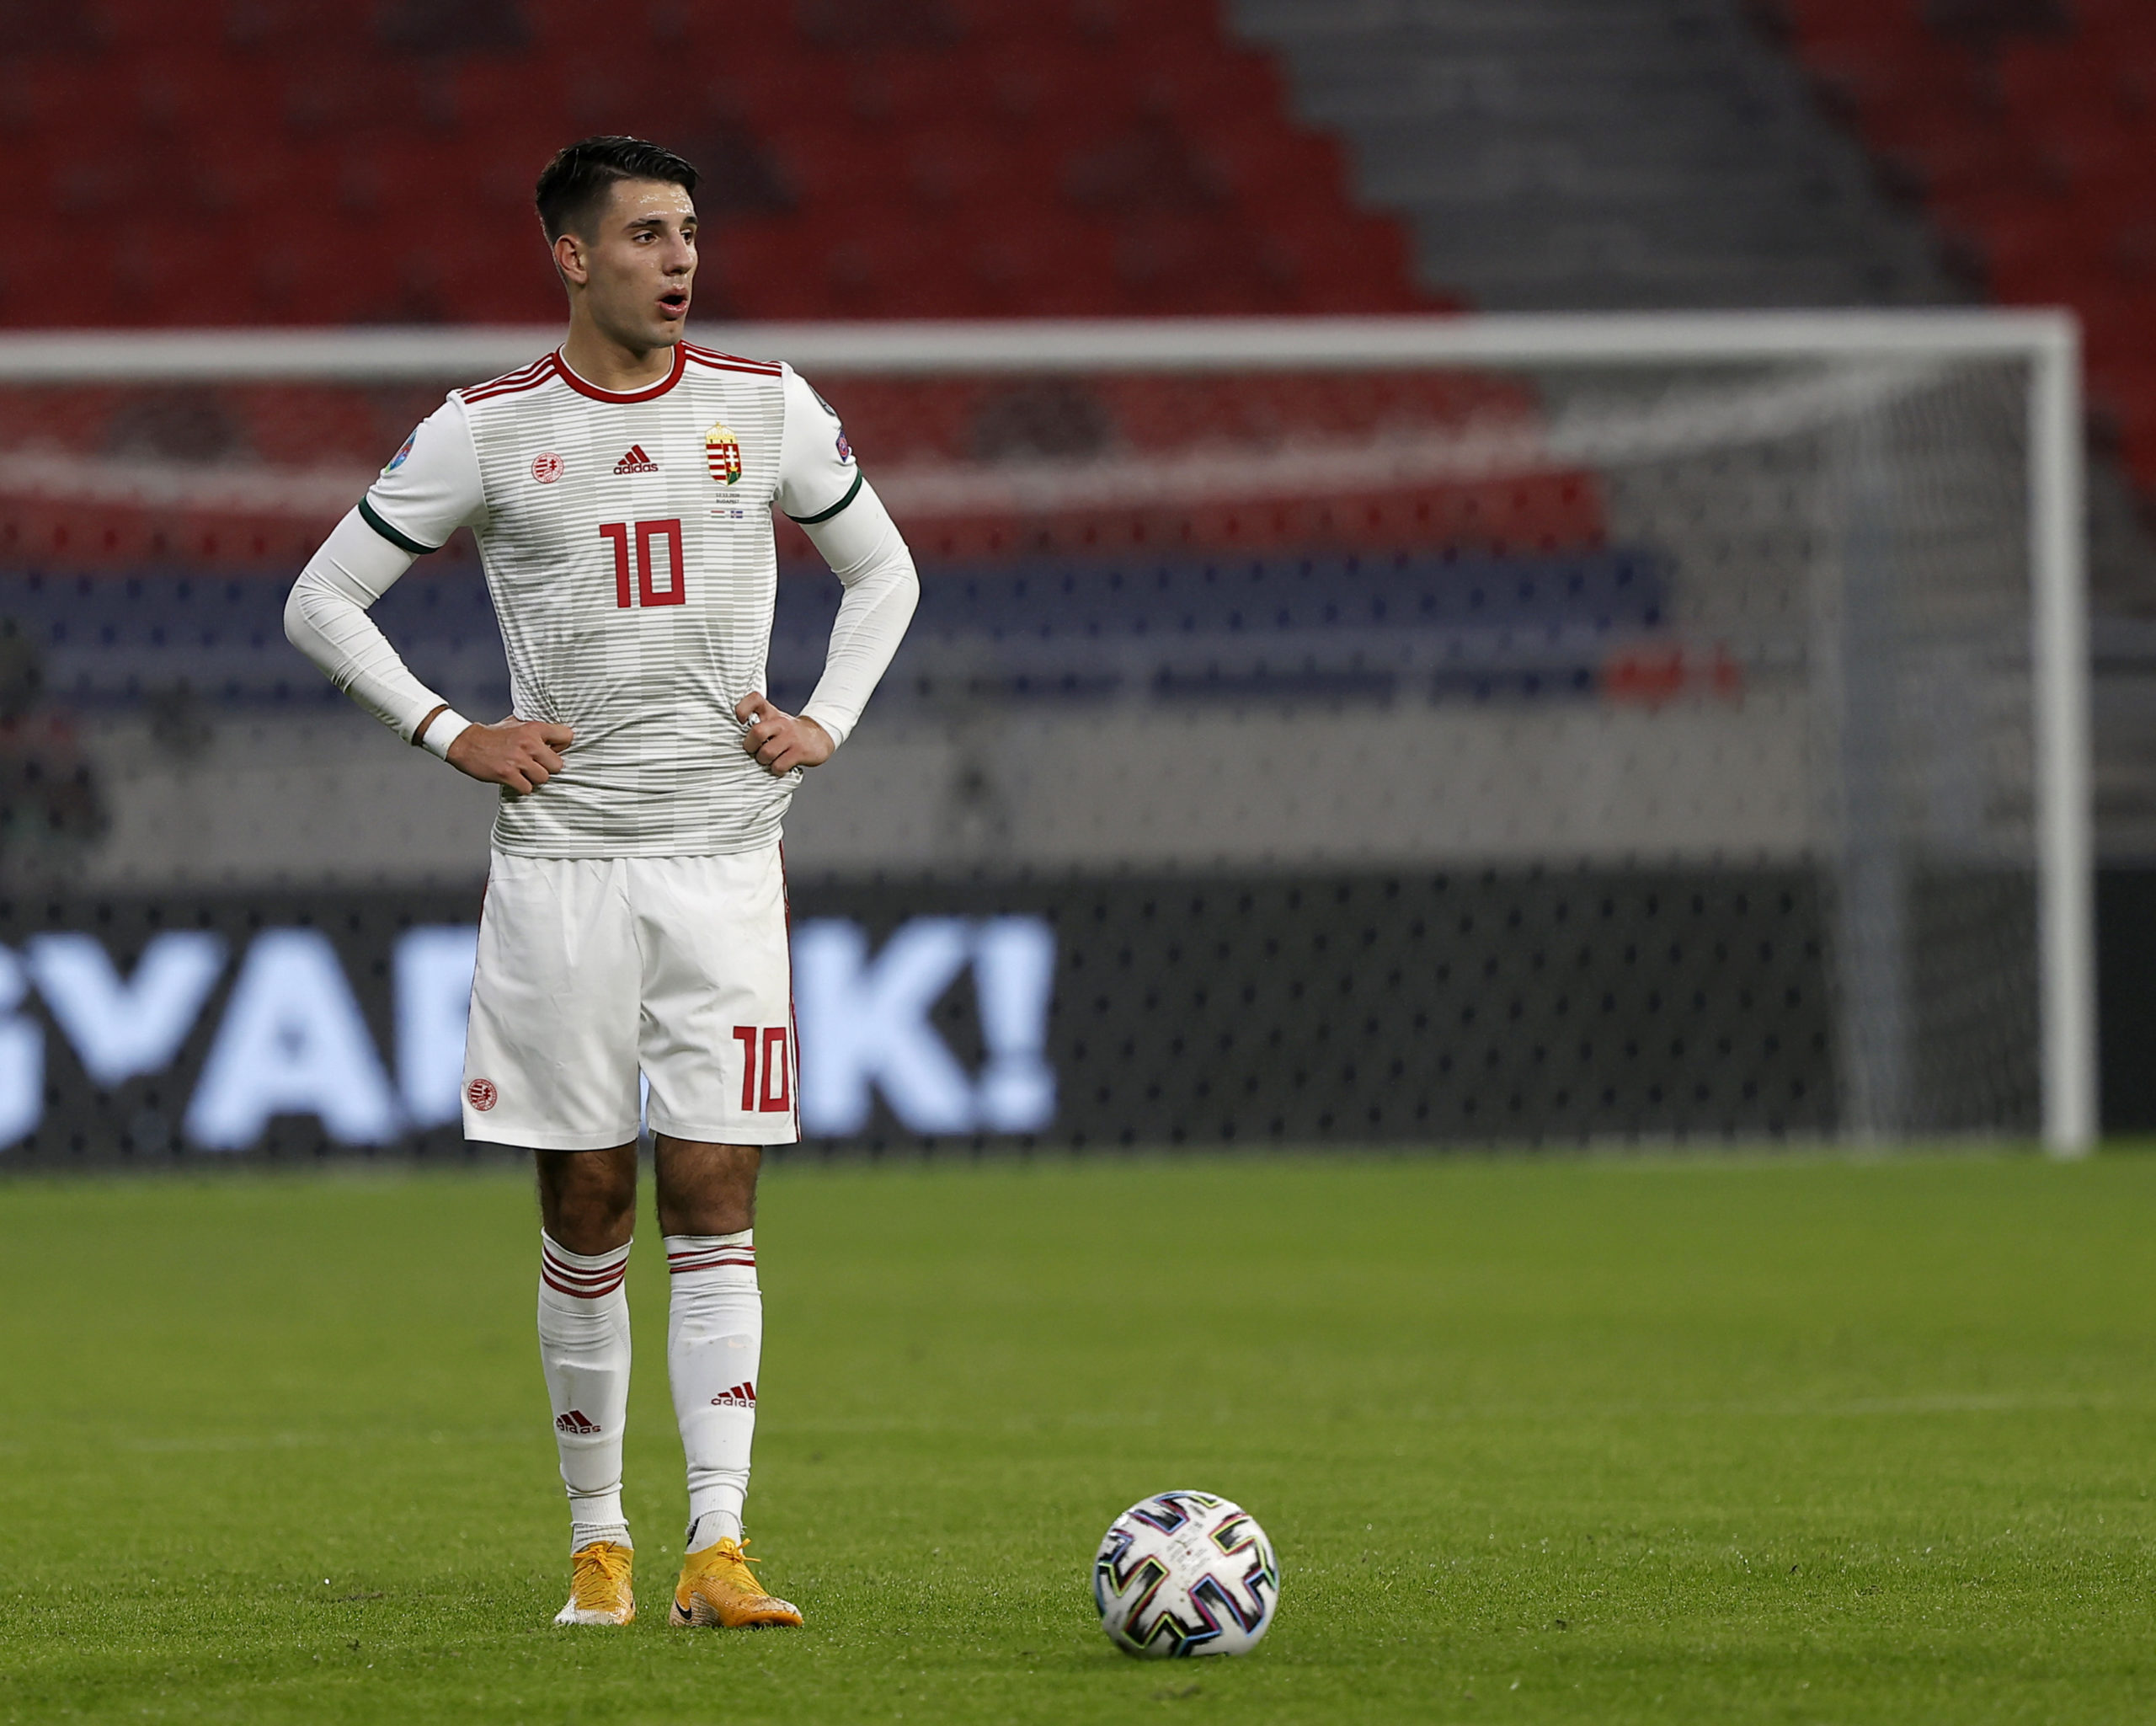 Dominik Szoboszlai stands on the ball as to take a free-kick for Hungary